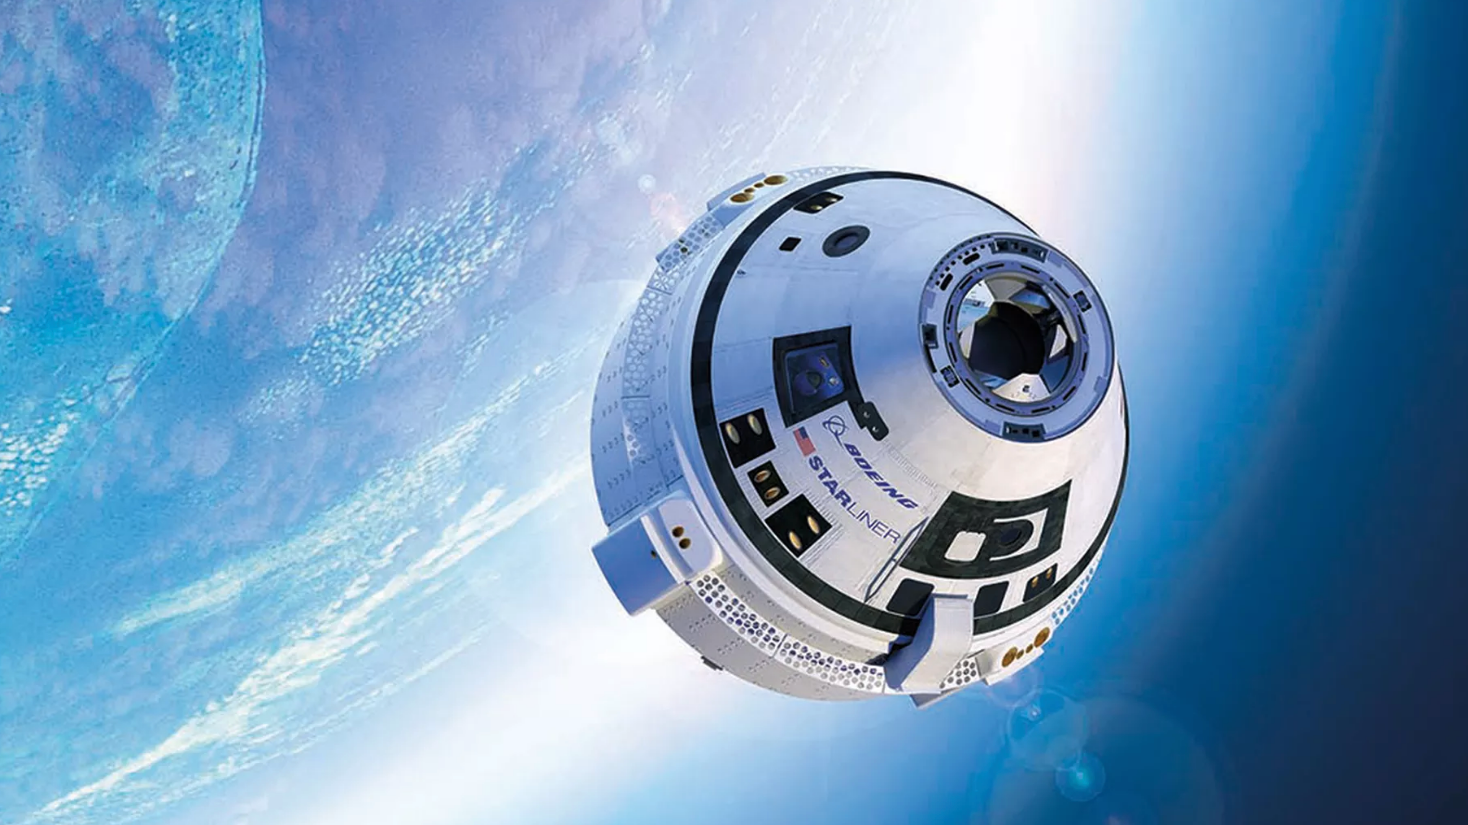 Boeing's Starliner Won't Meet Up With Space Station After Failure To Reach Proper Orbit